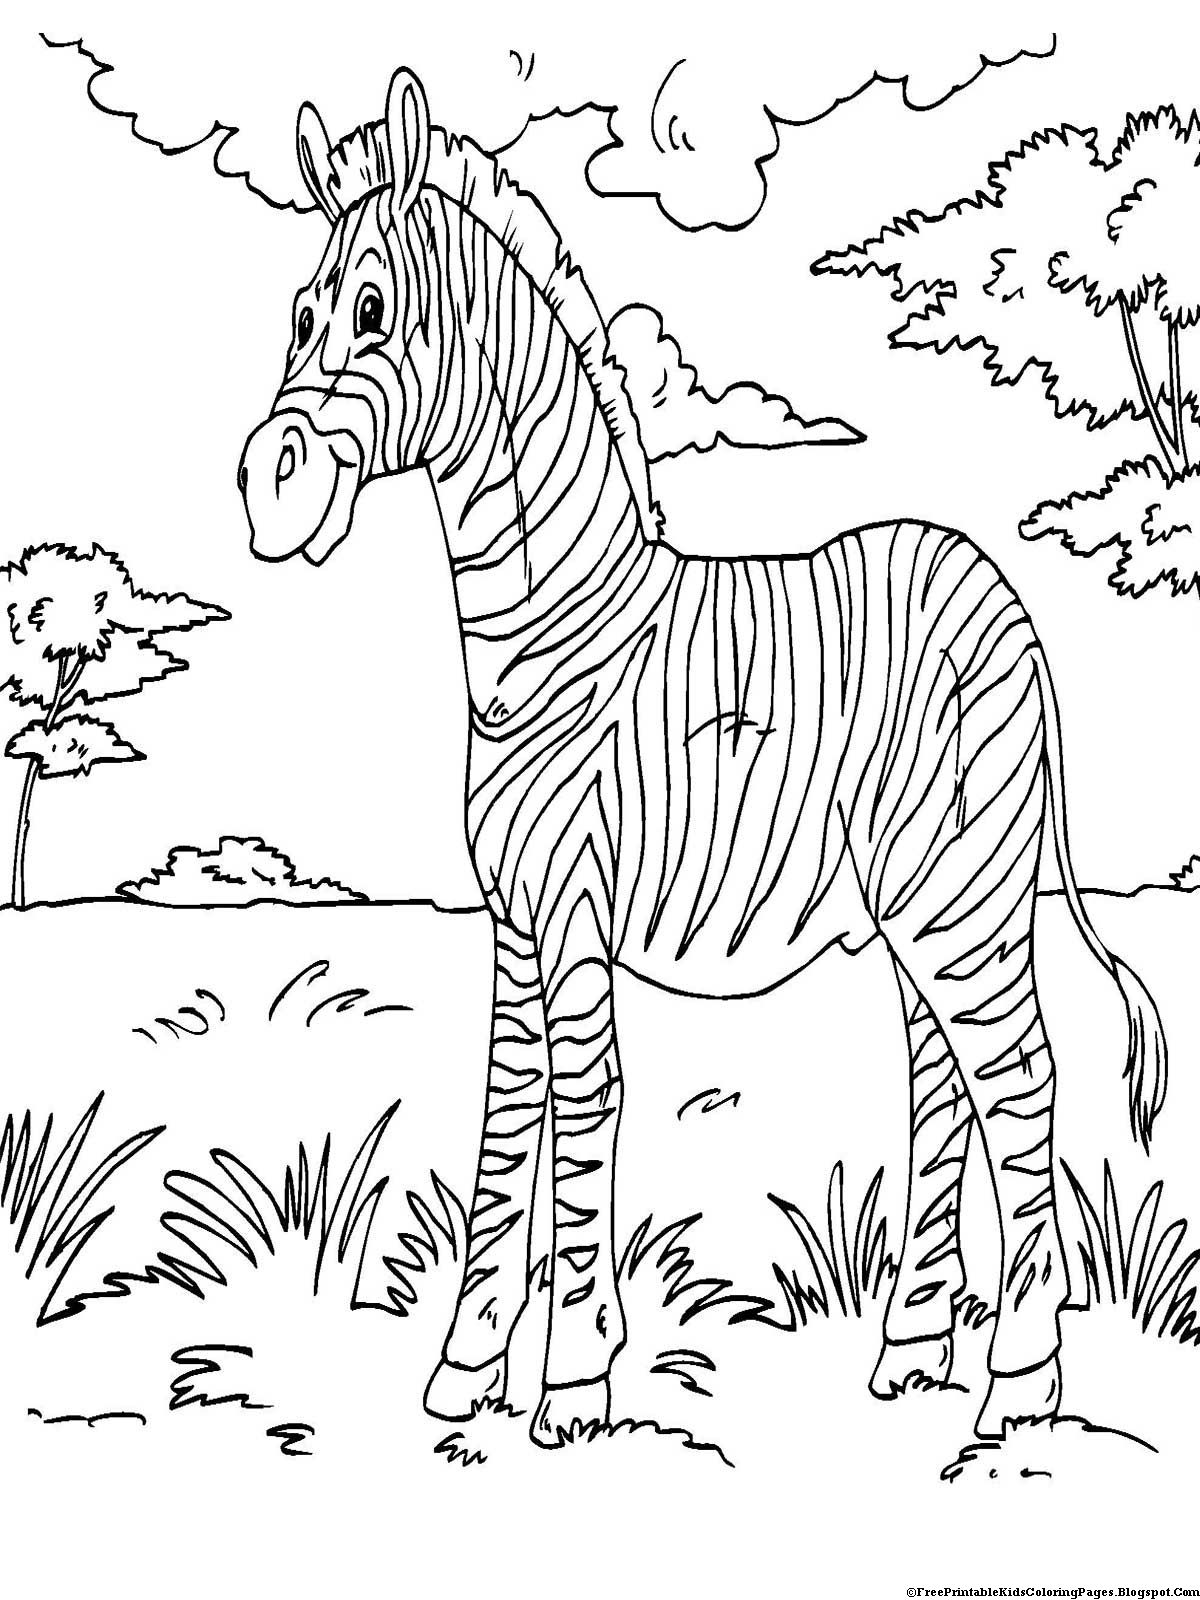 Bokito The Gorilla Coloring Pages - Coloring Home